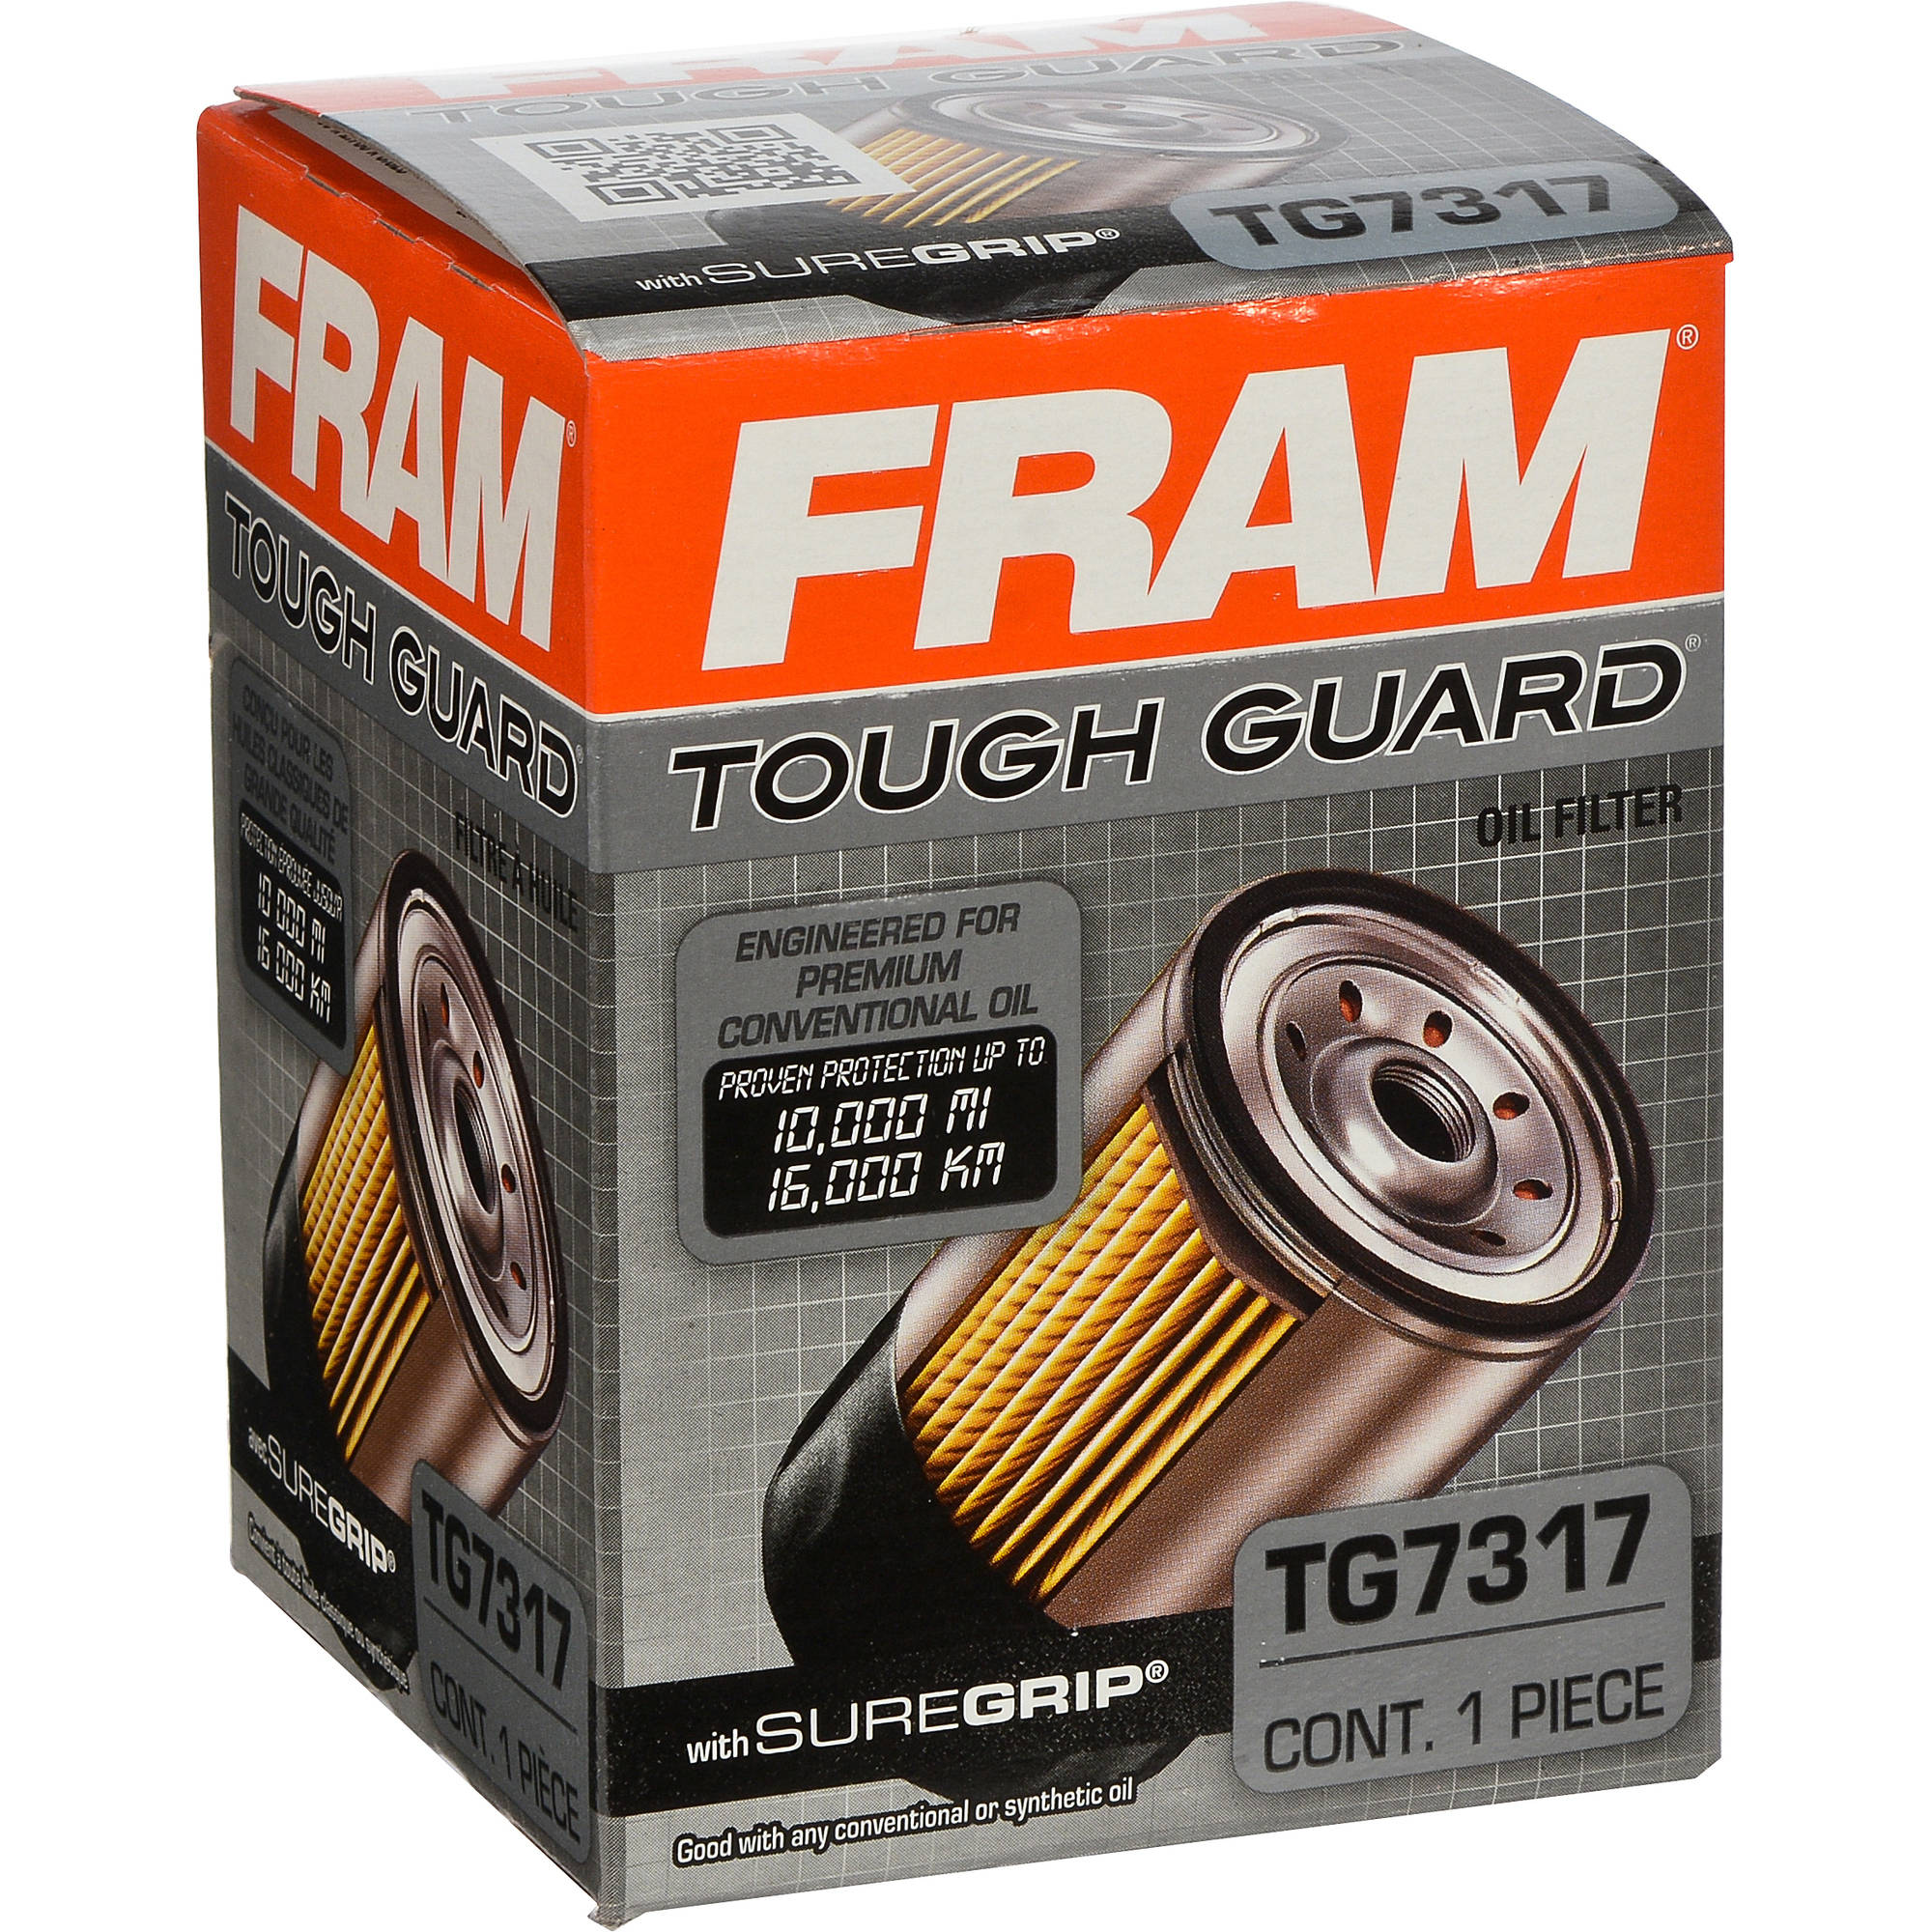 FRAM Tough Guard Oil Filter, TG7317